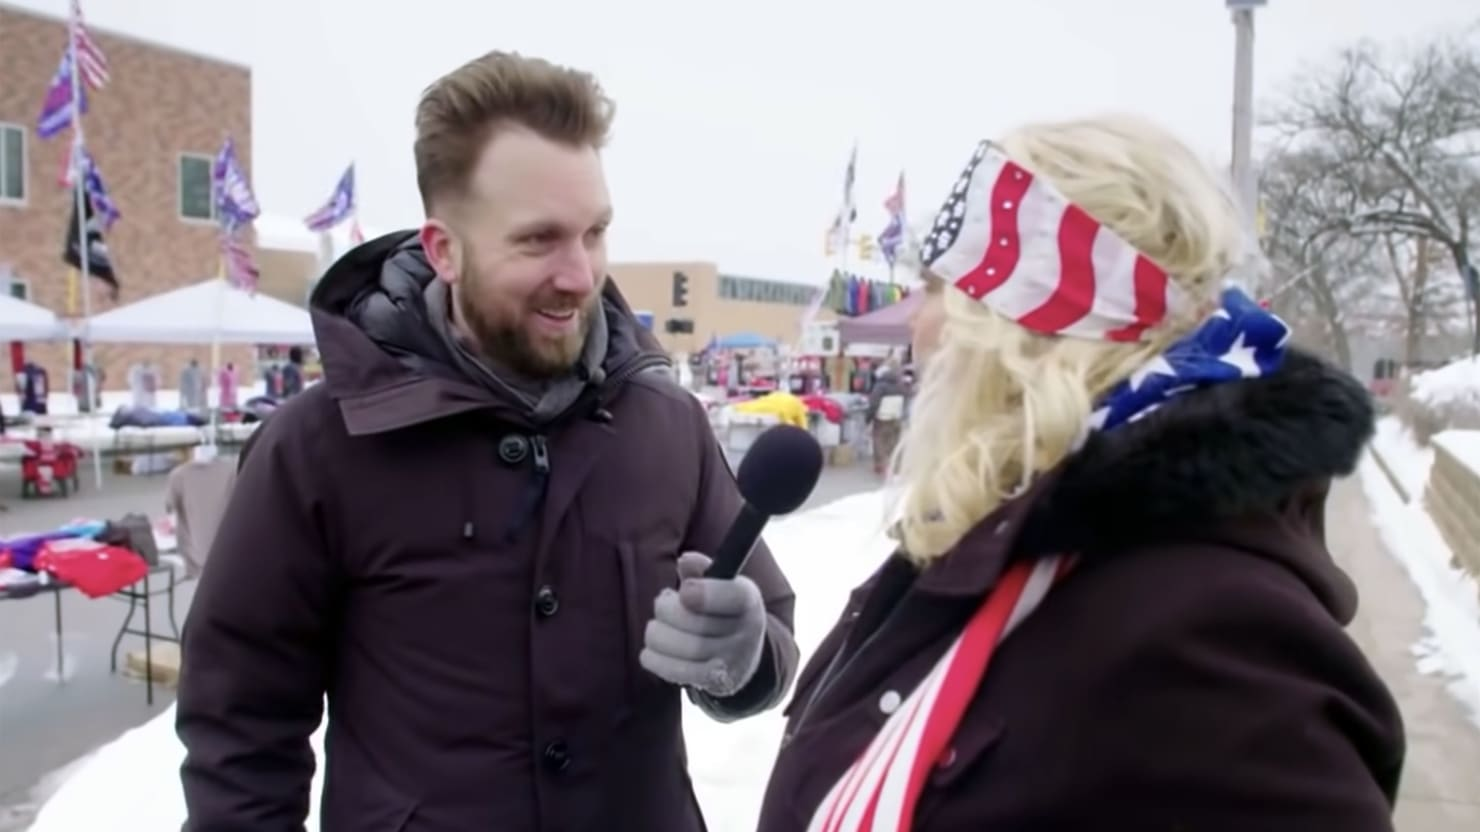 How 'Daily Show' Contributor Jordan Klepper Became the King of Humiliating Trump Fans